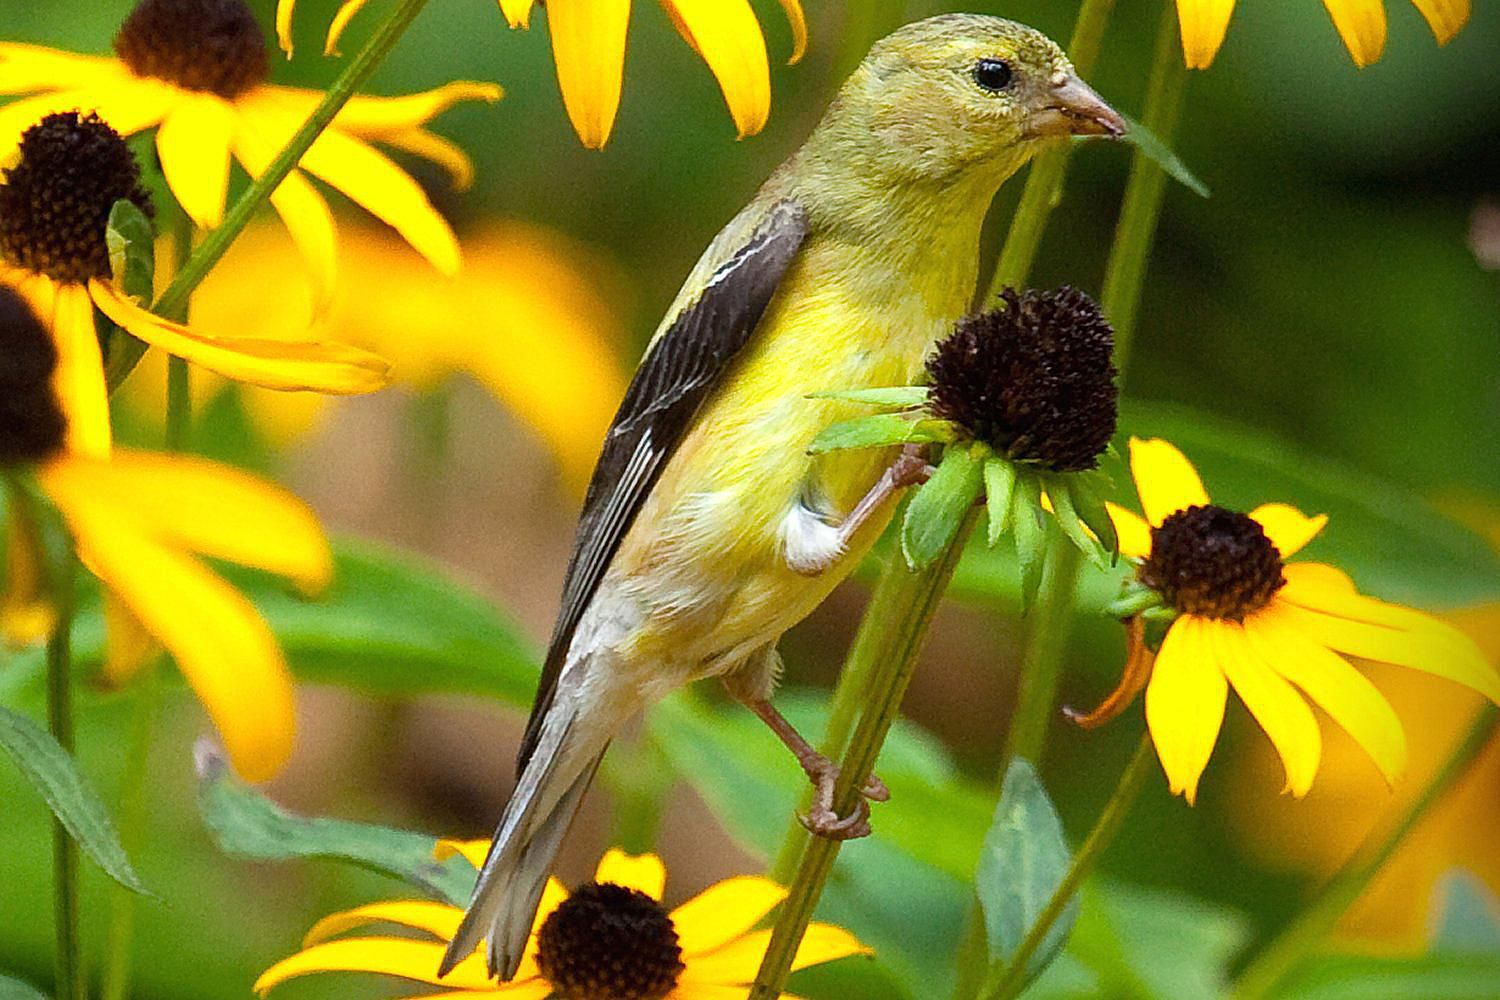 How to Attract Goldfinches to Your Yard